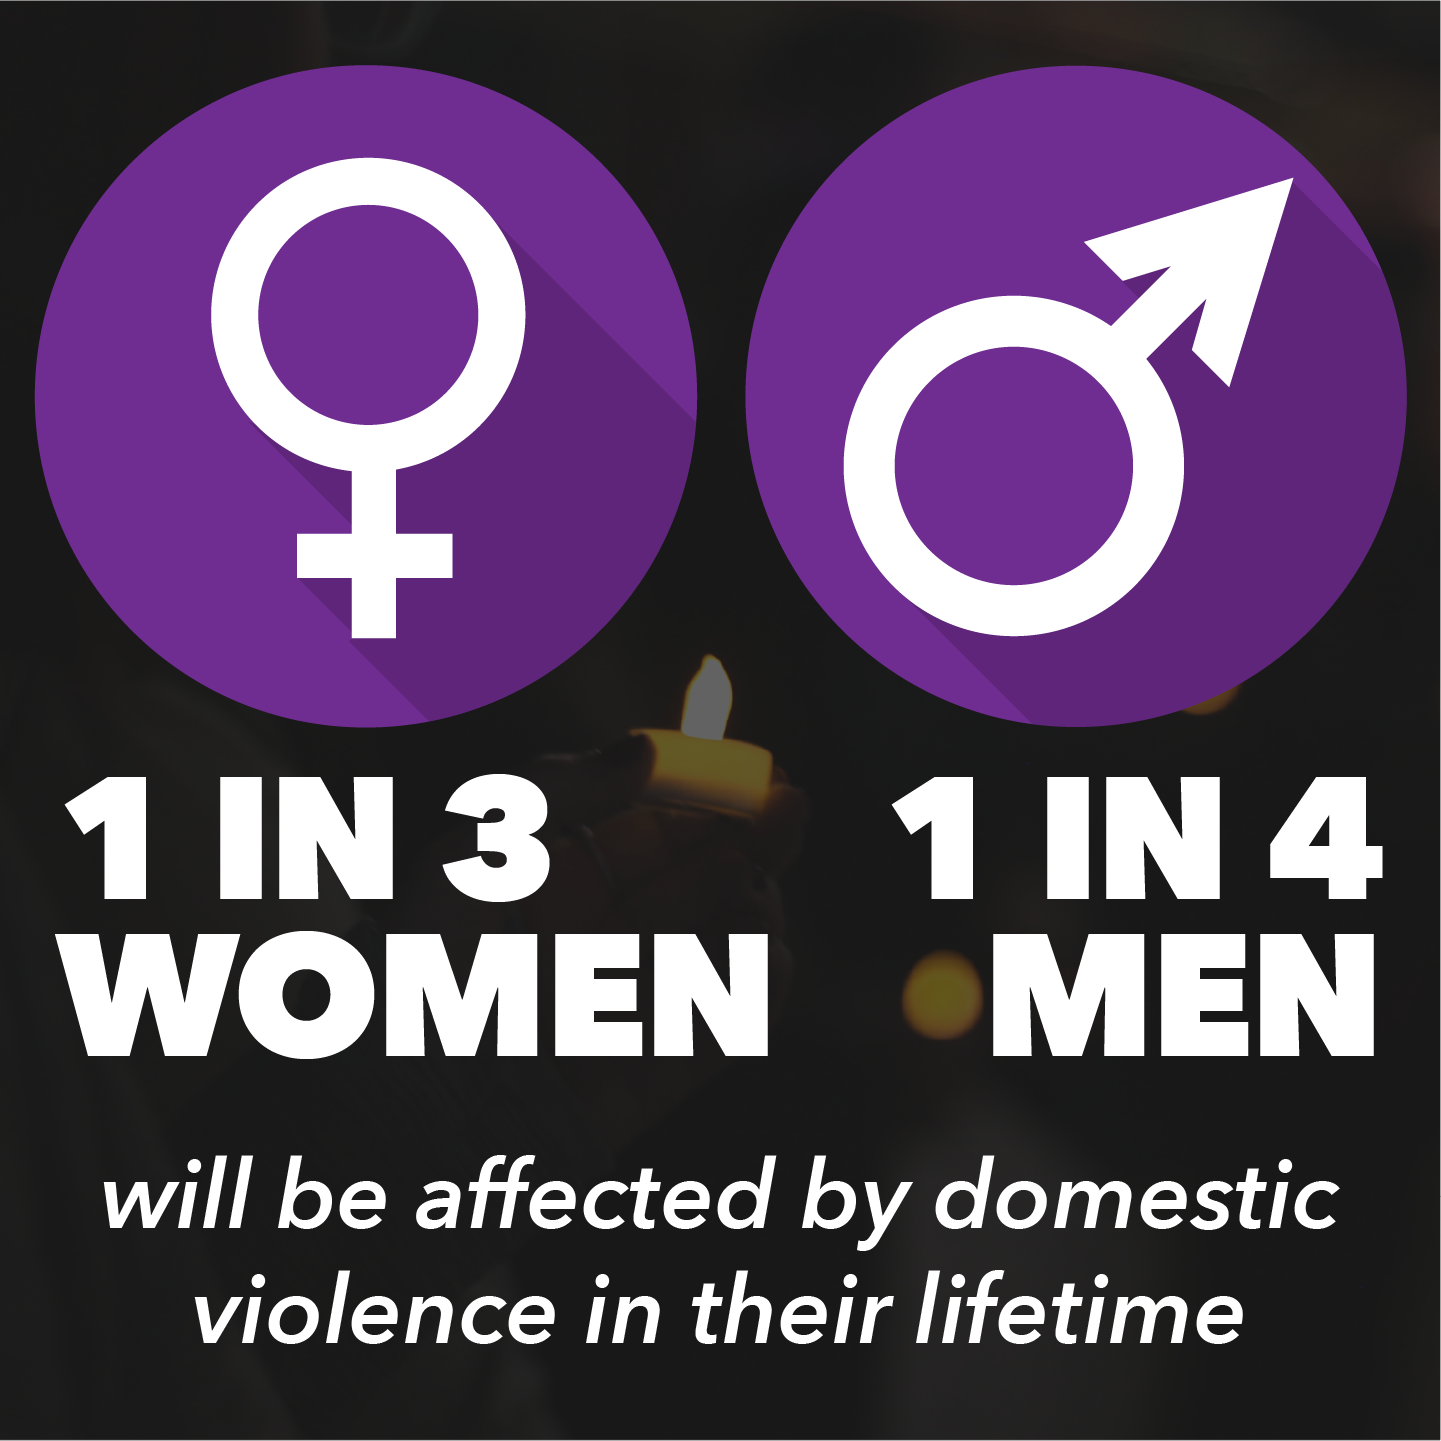 1 in 3 women & 1 in 4 men will be affected by domestic violence in their lifetime